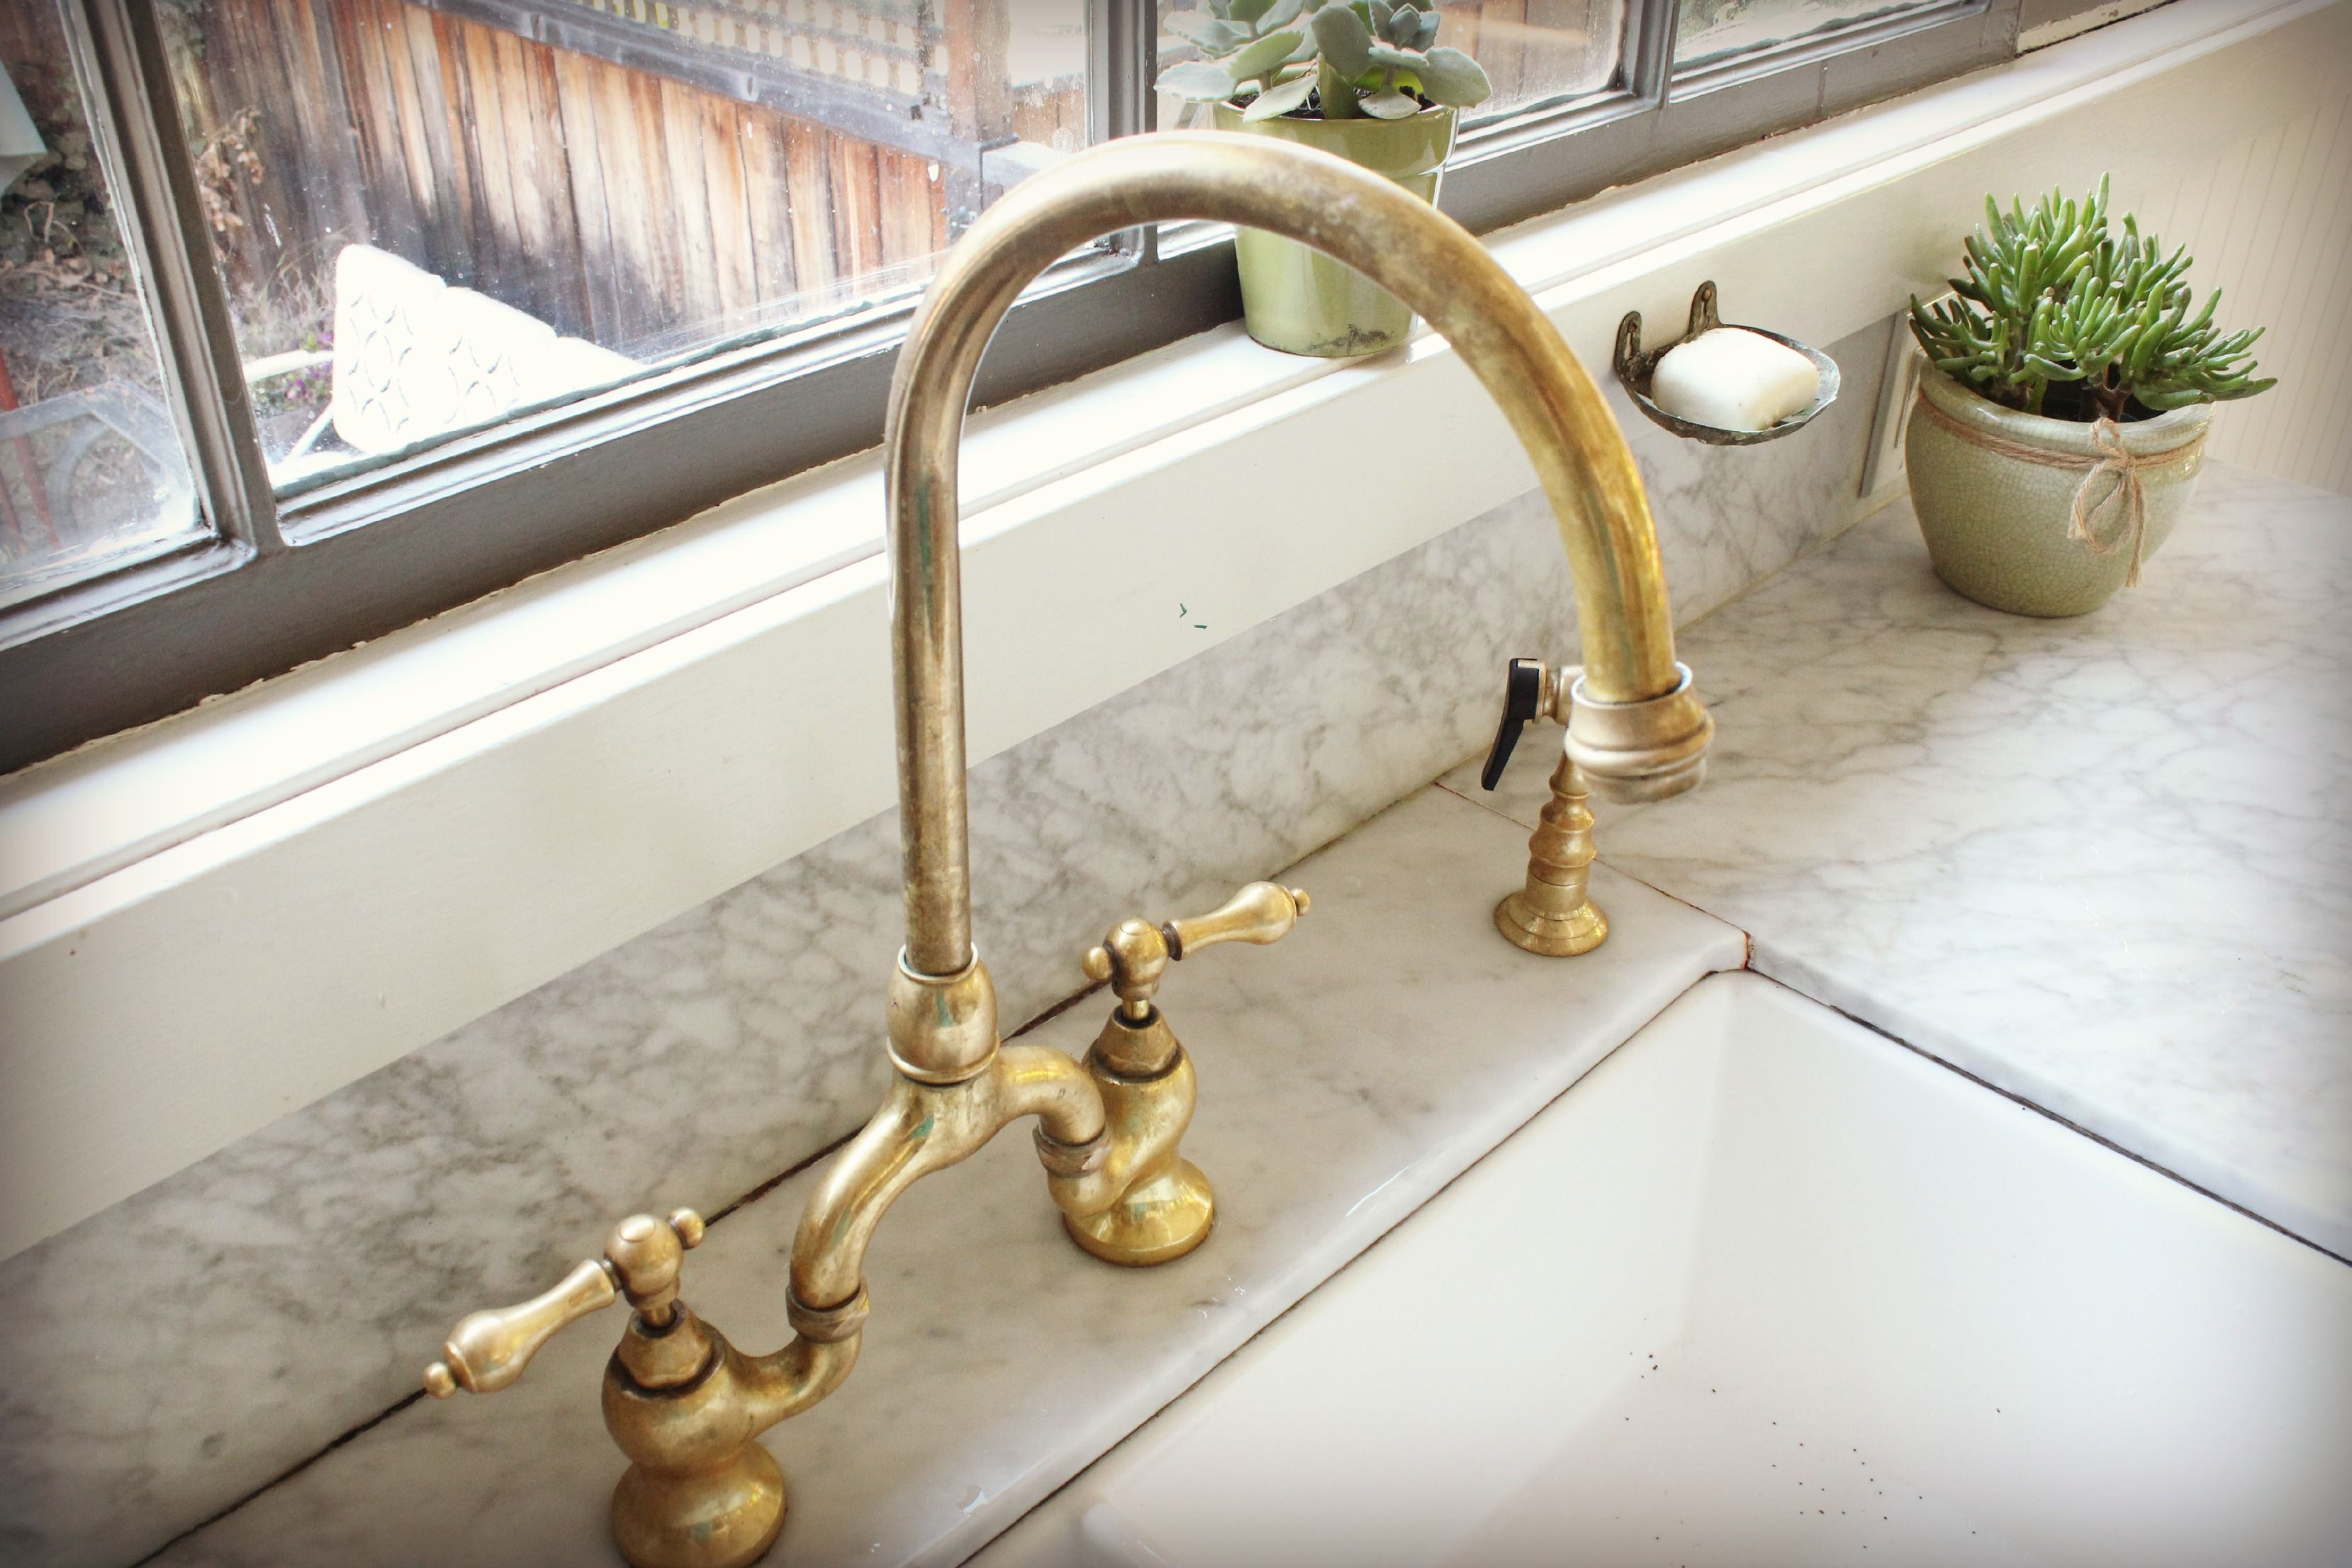 Antique kitchen faucets unlacquered brass faucet detail old fashioned kitchen faucets pic inspirational kitchen faucet moen kitchen faucet